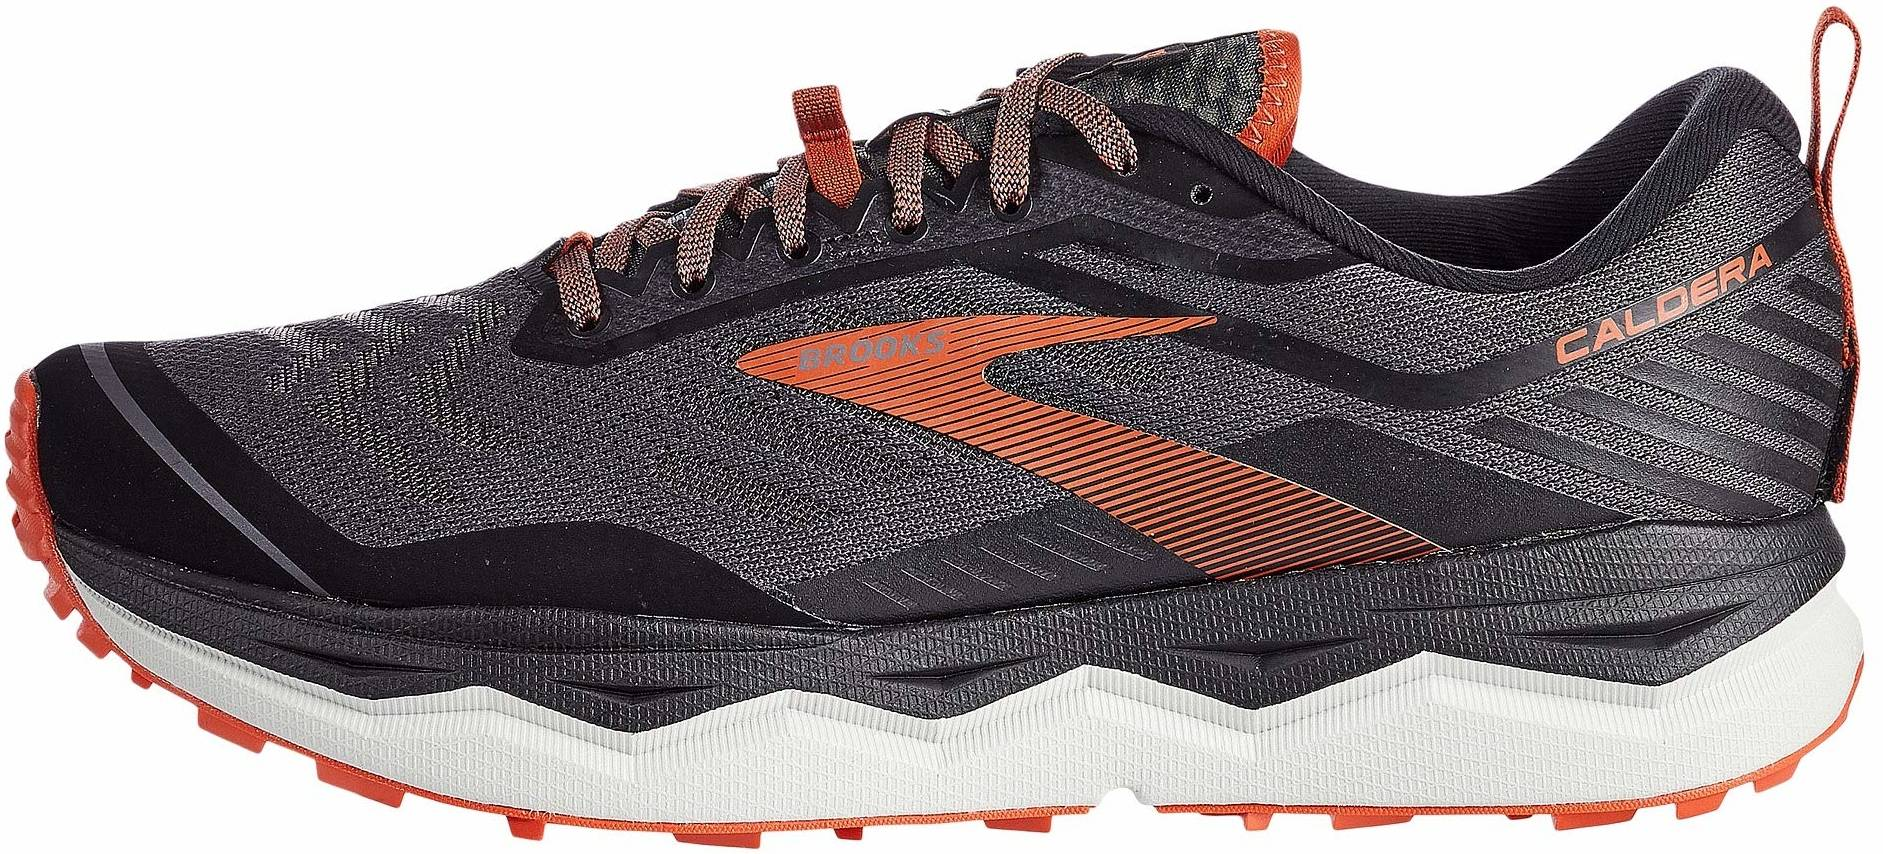 Only $130 + Review of Brooks Caldera 4